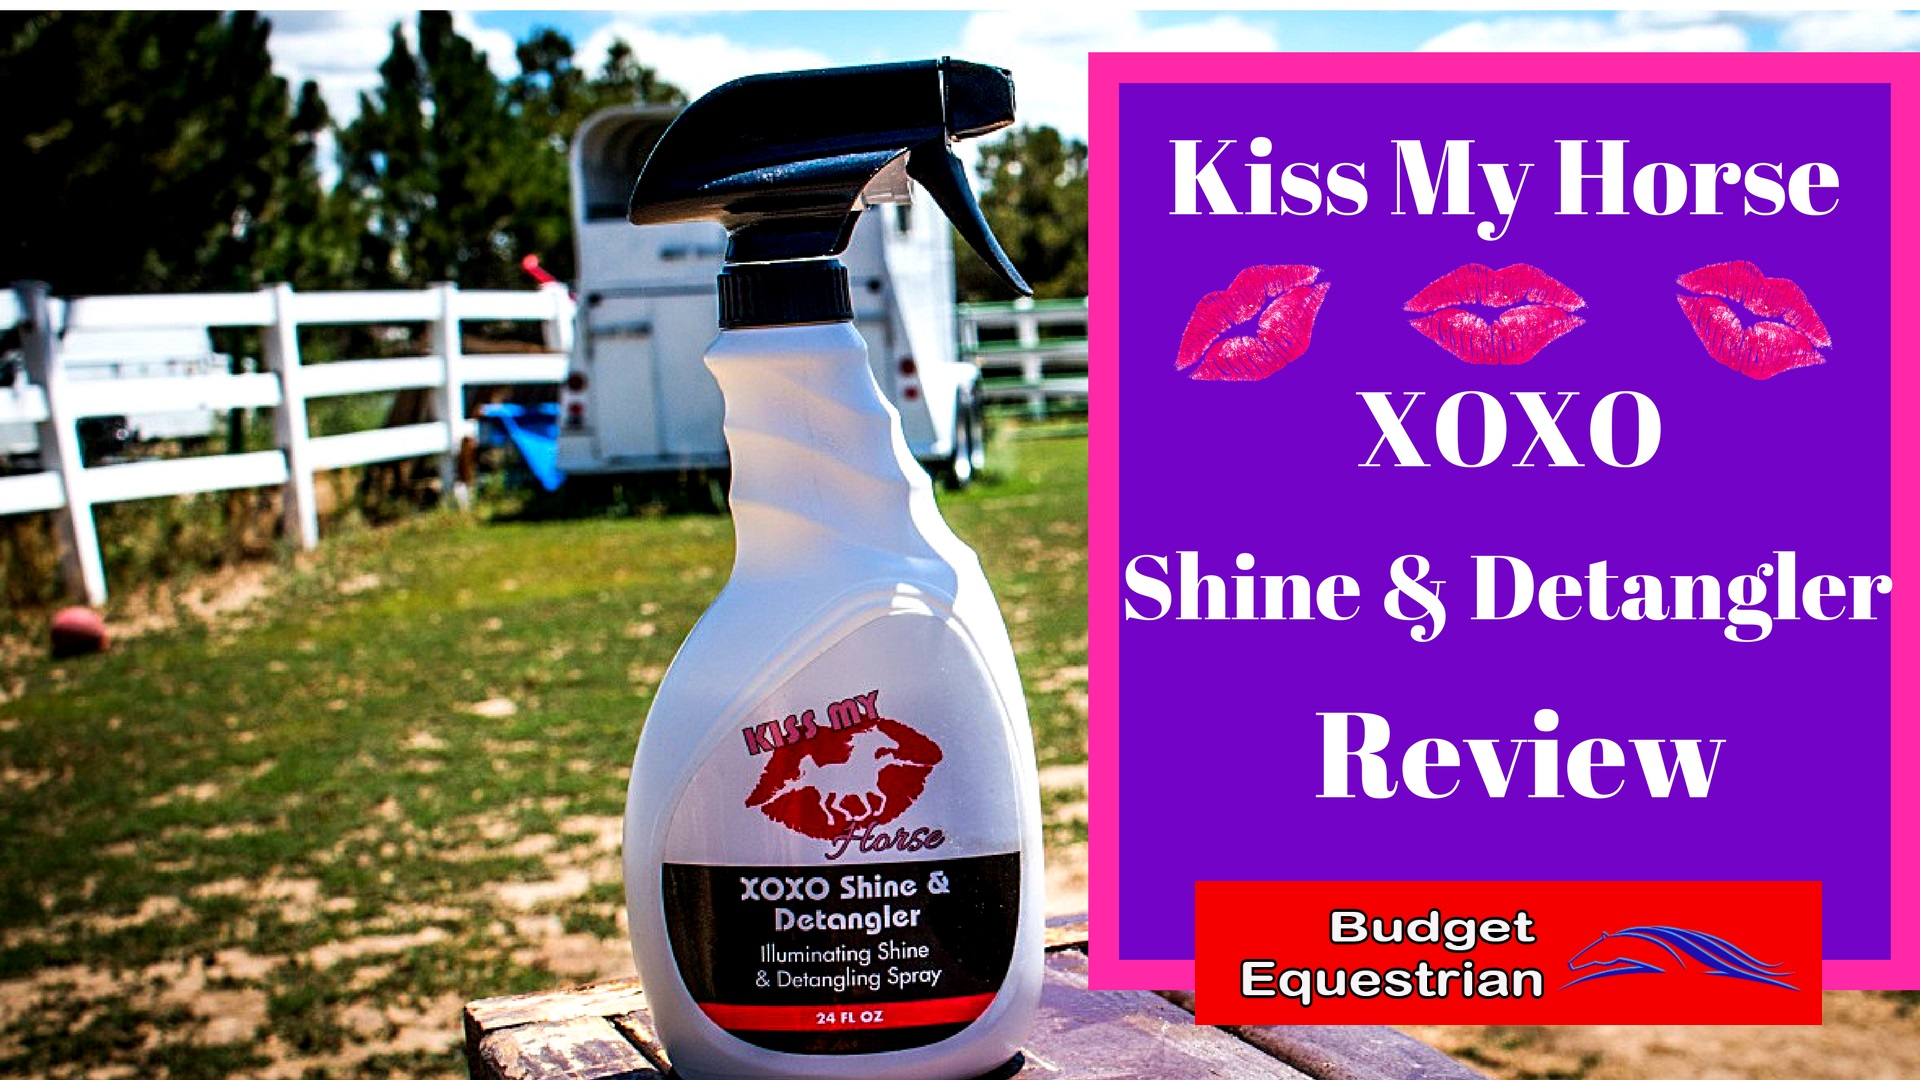 Kiss My Horse XOXO Detangler and Shine